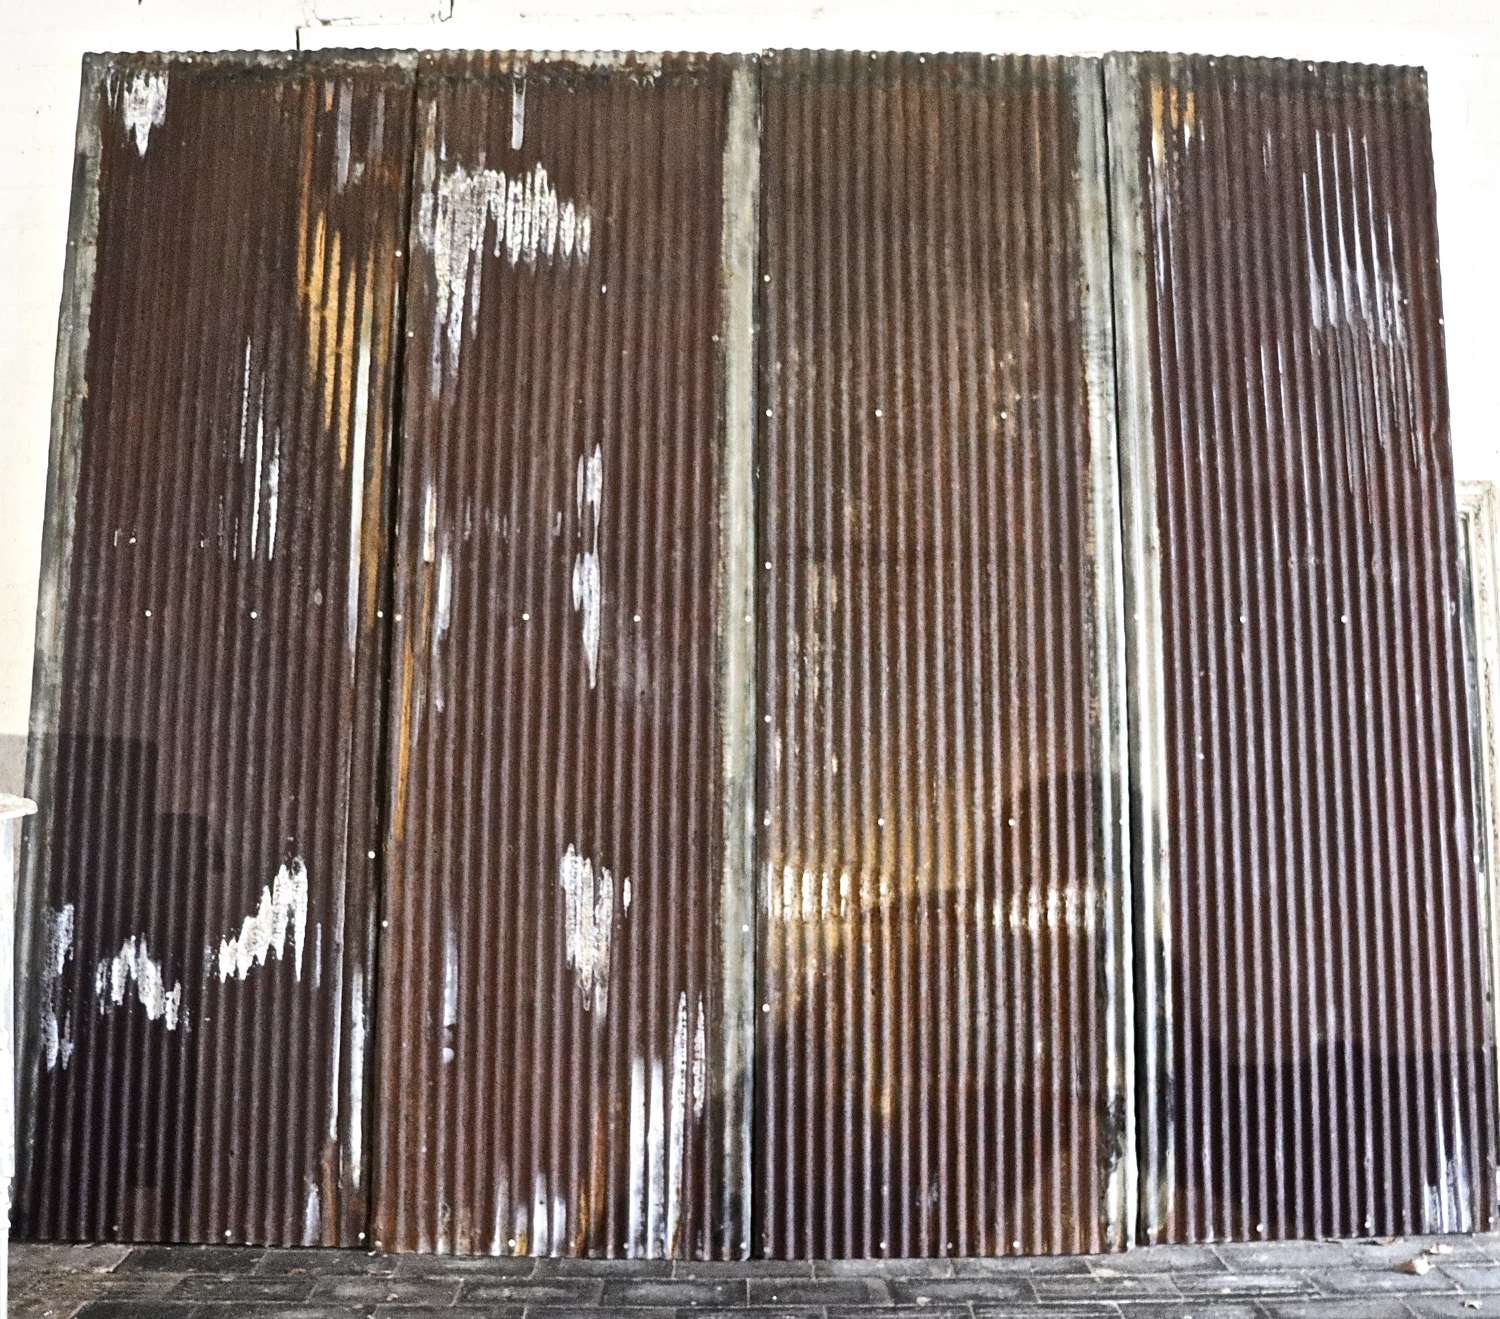 Corrugated iron panels on wooden frames